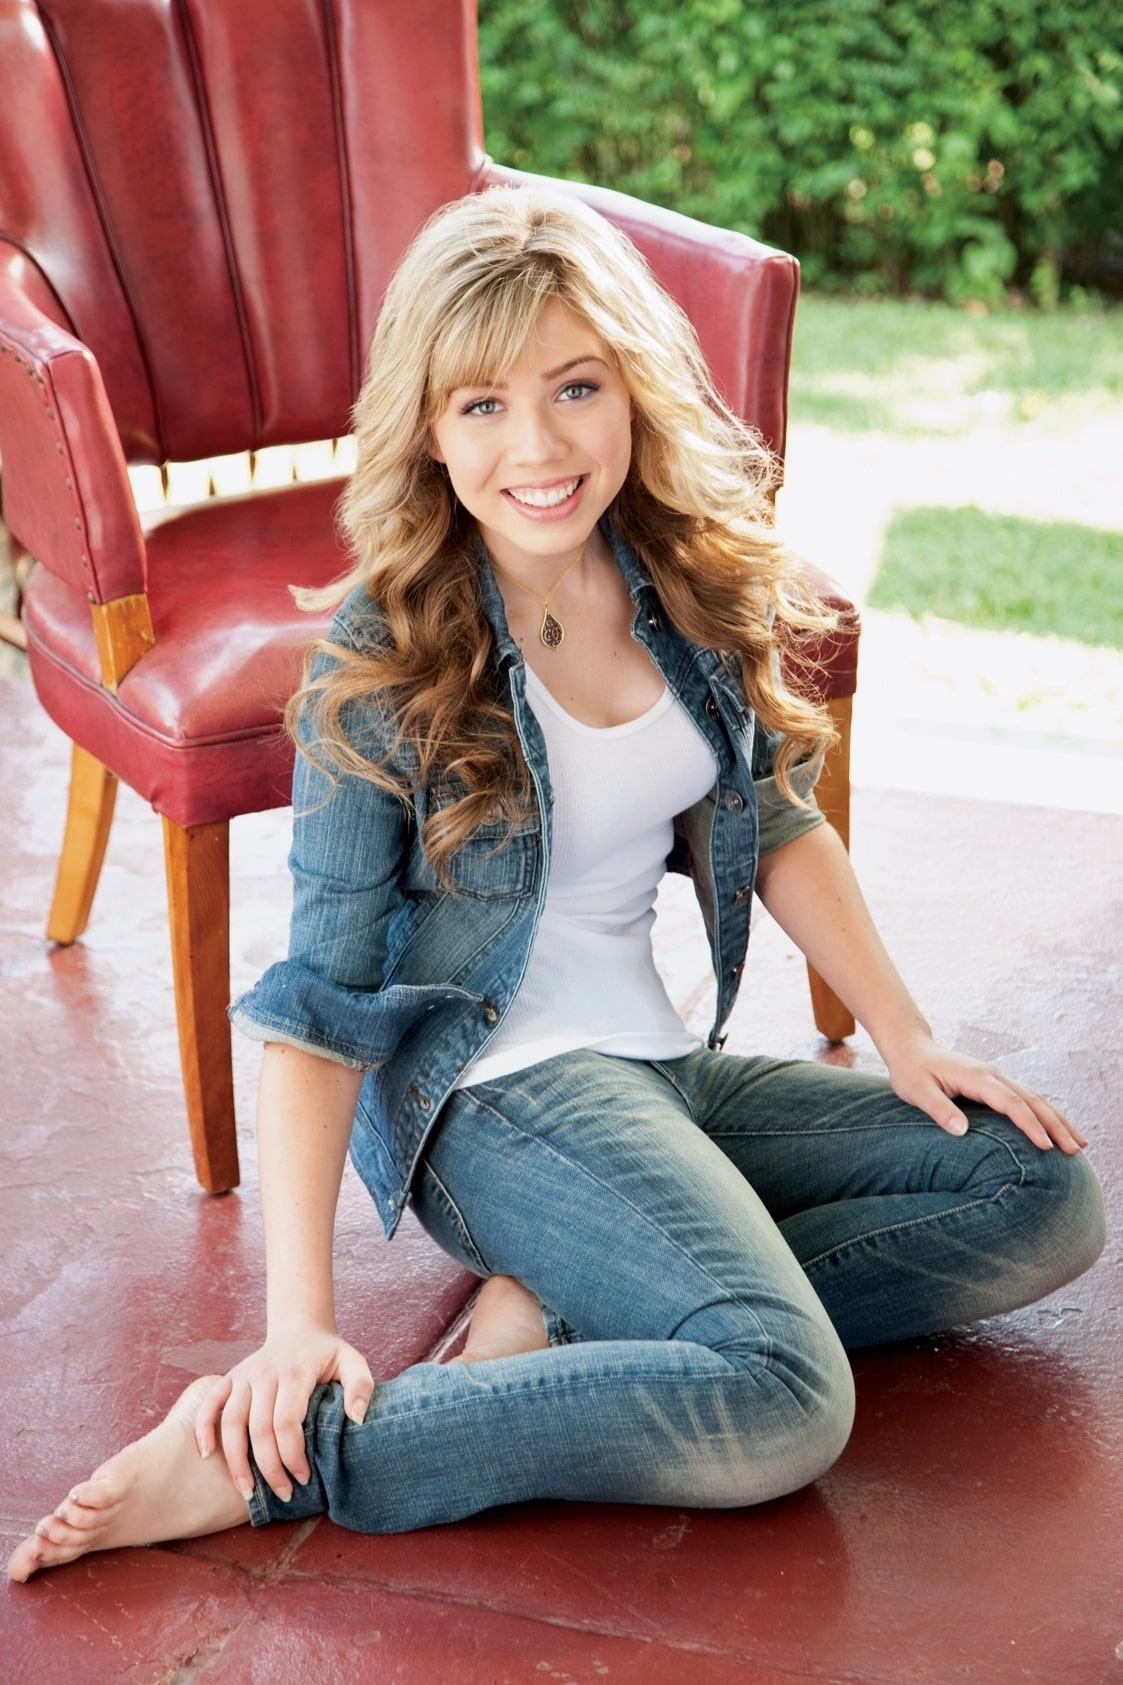 jennette mccurdy hot picture